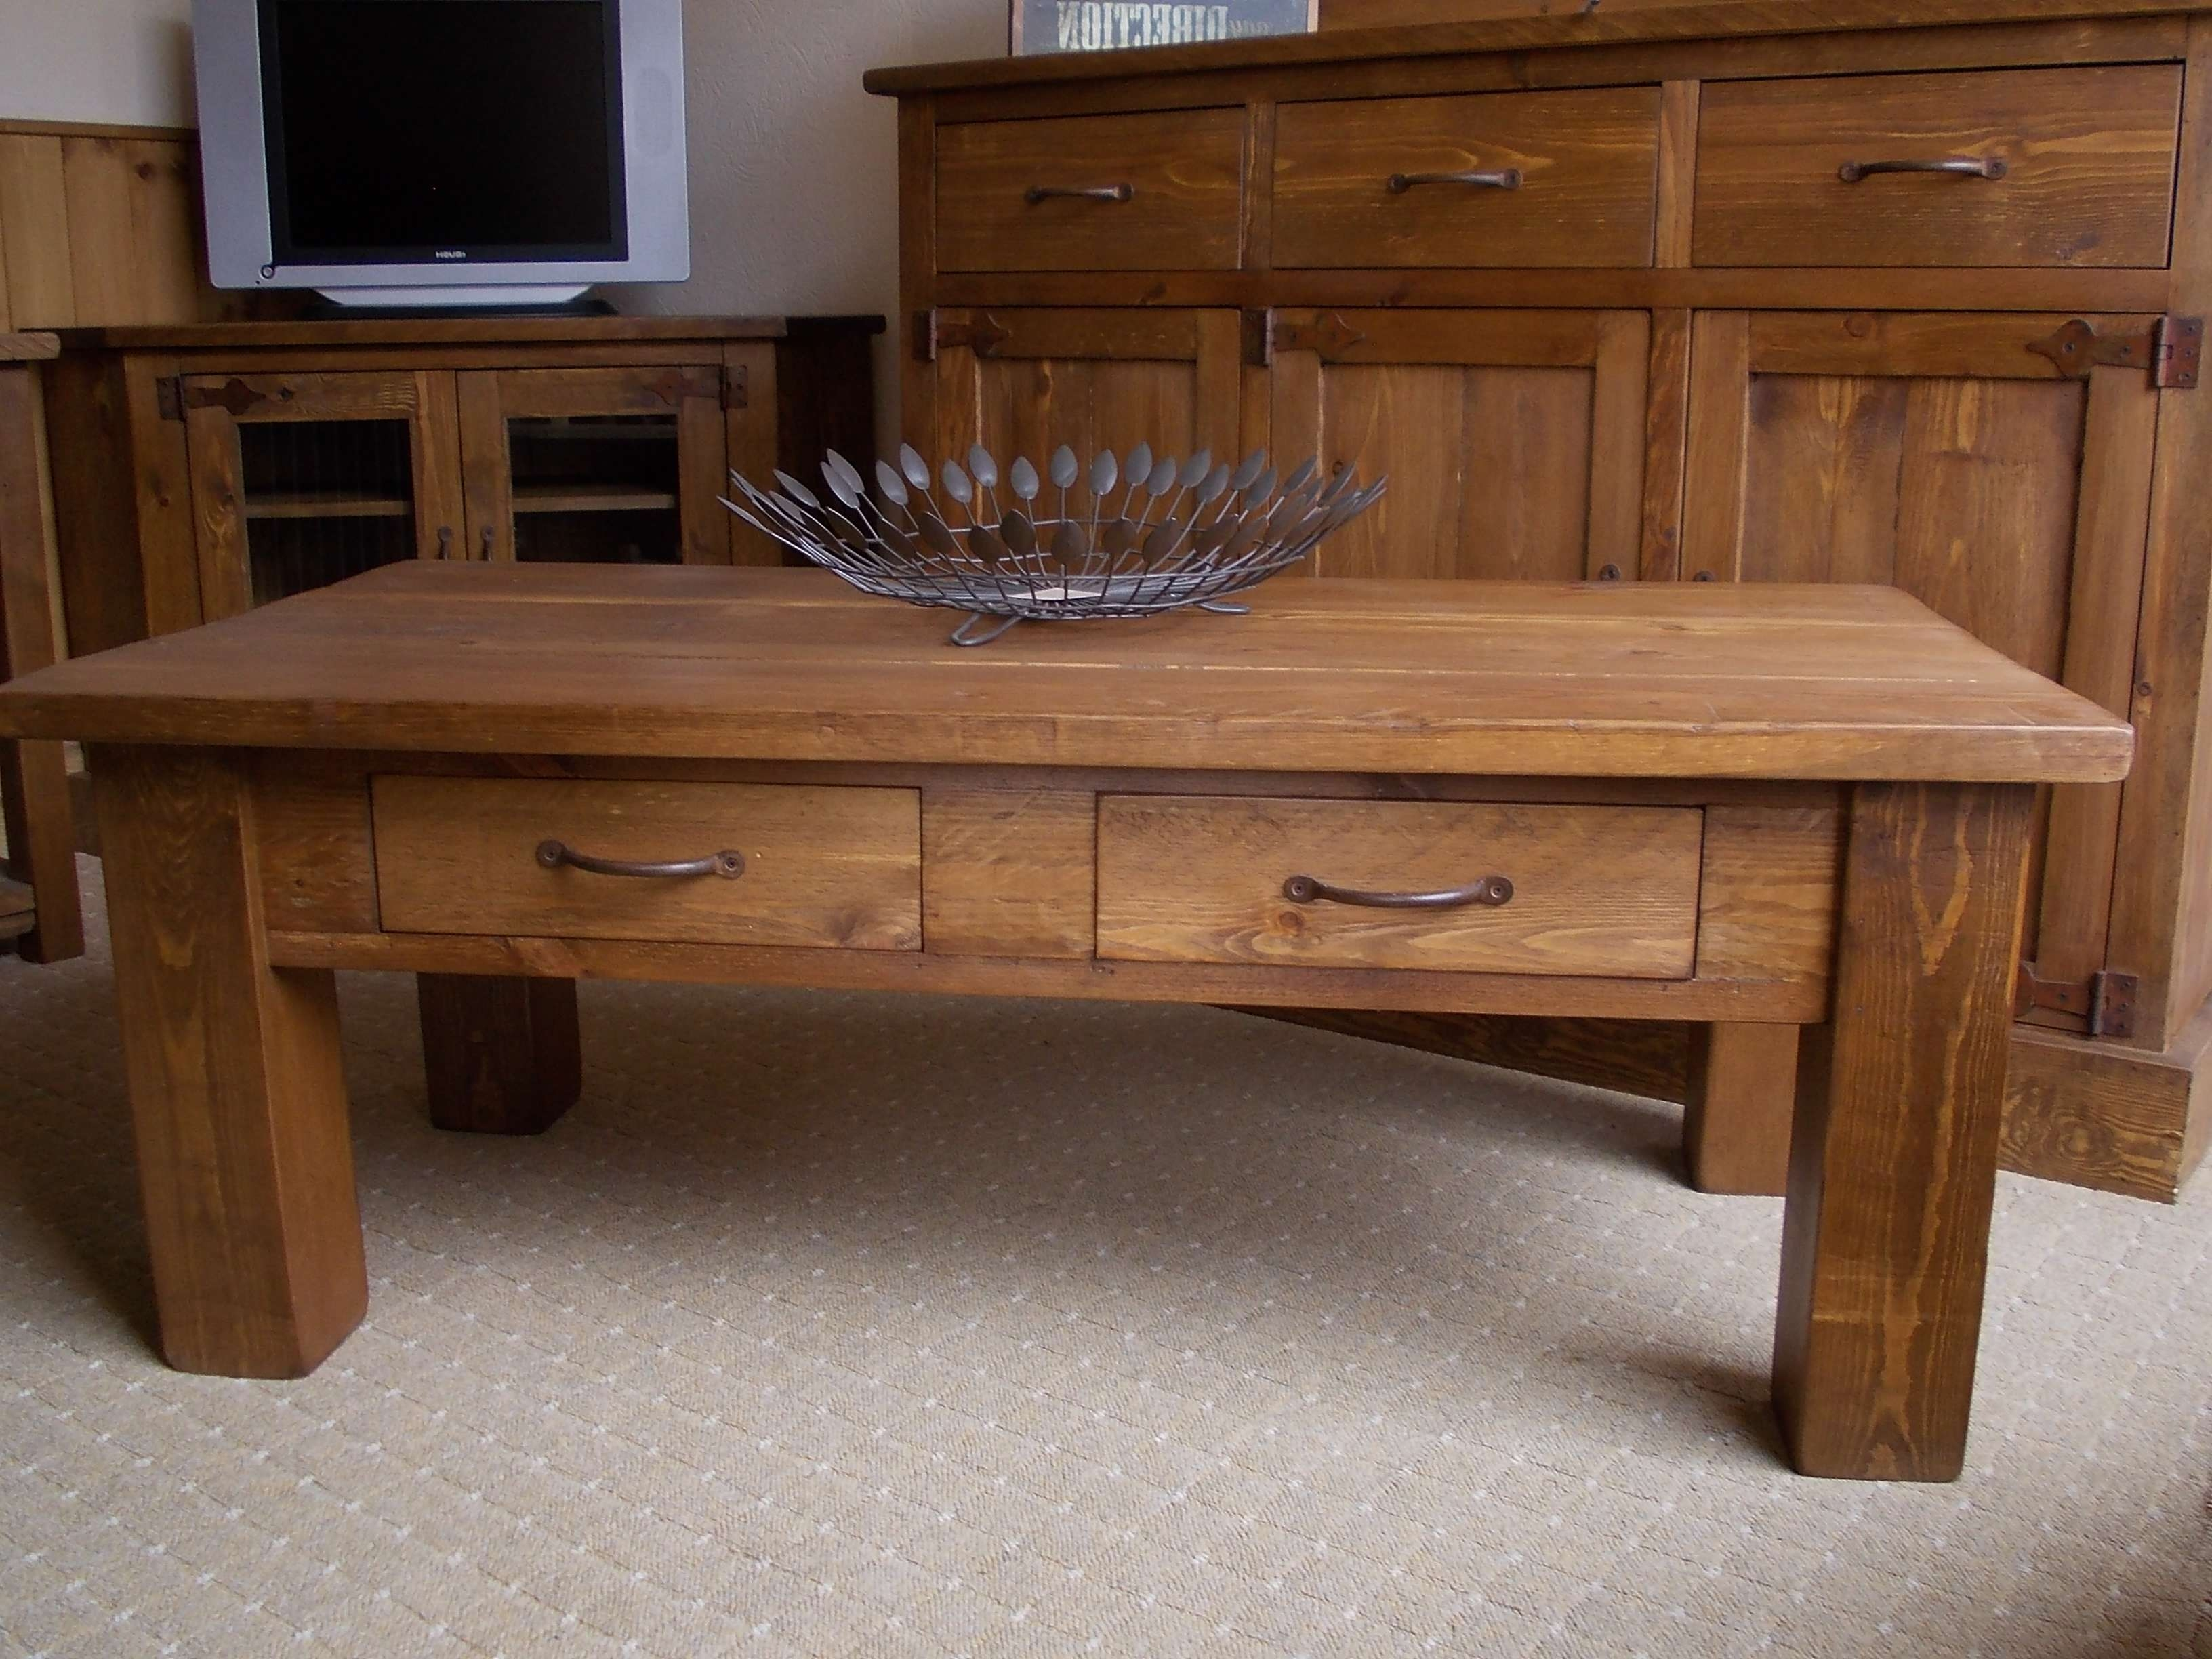 2018 Rustic Oak Coffee Table With Drawers For Coffee Table : Marvelous Small Coffee Tables Oval Coffee Table (View 1 of 20)